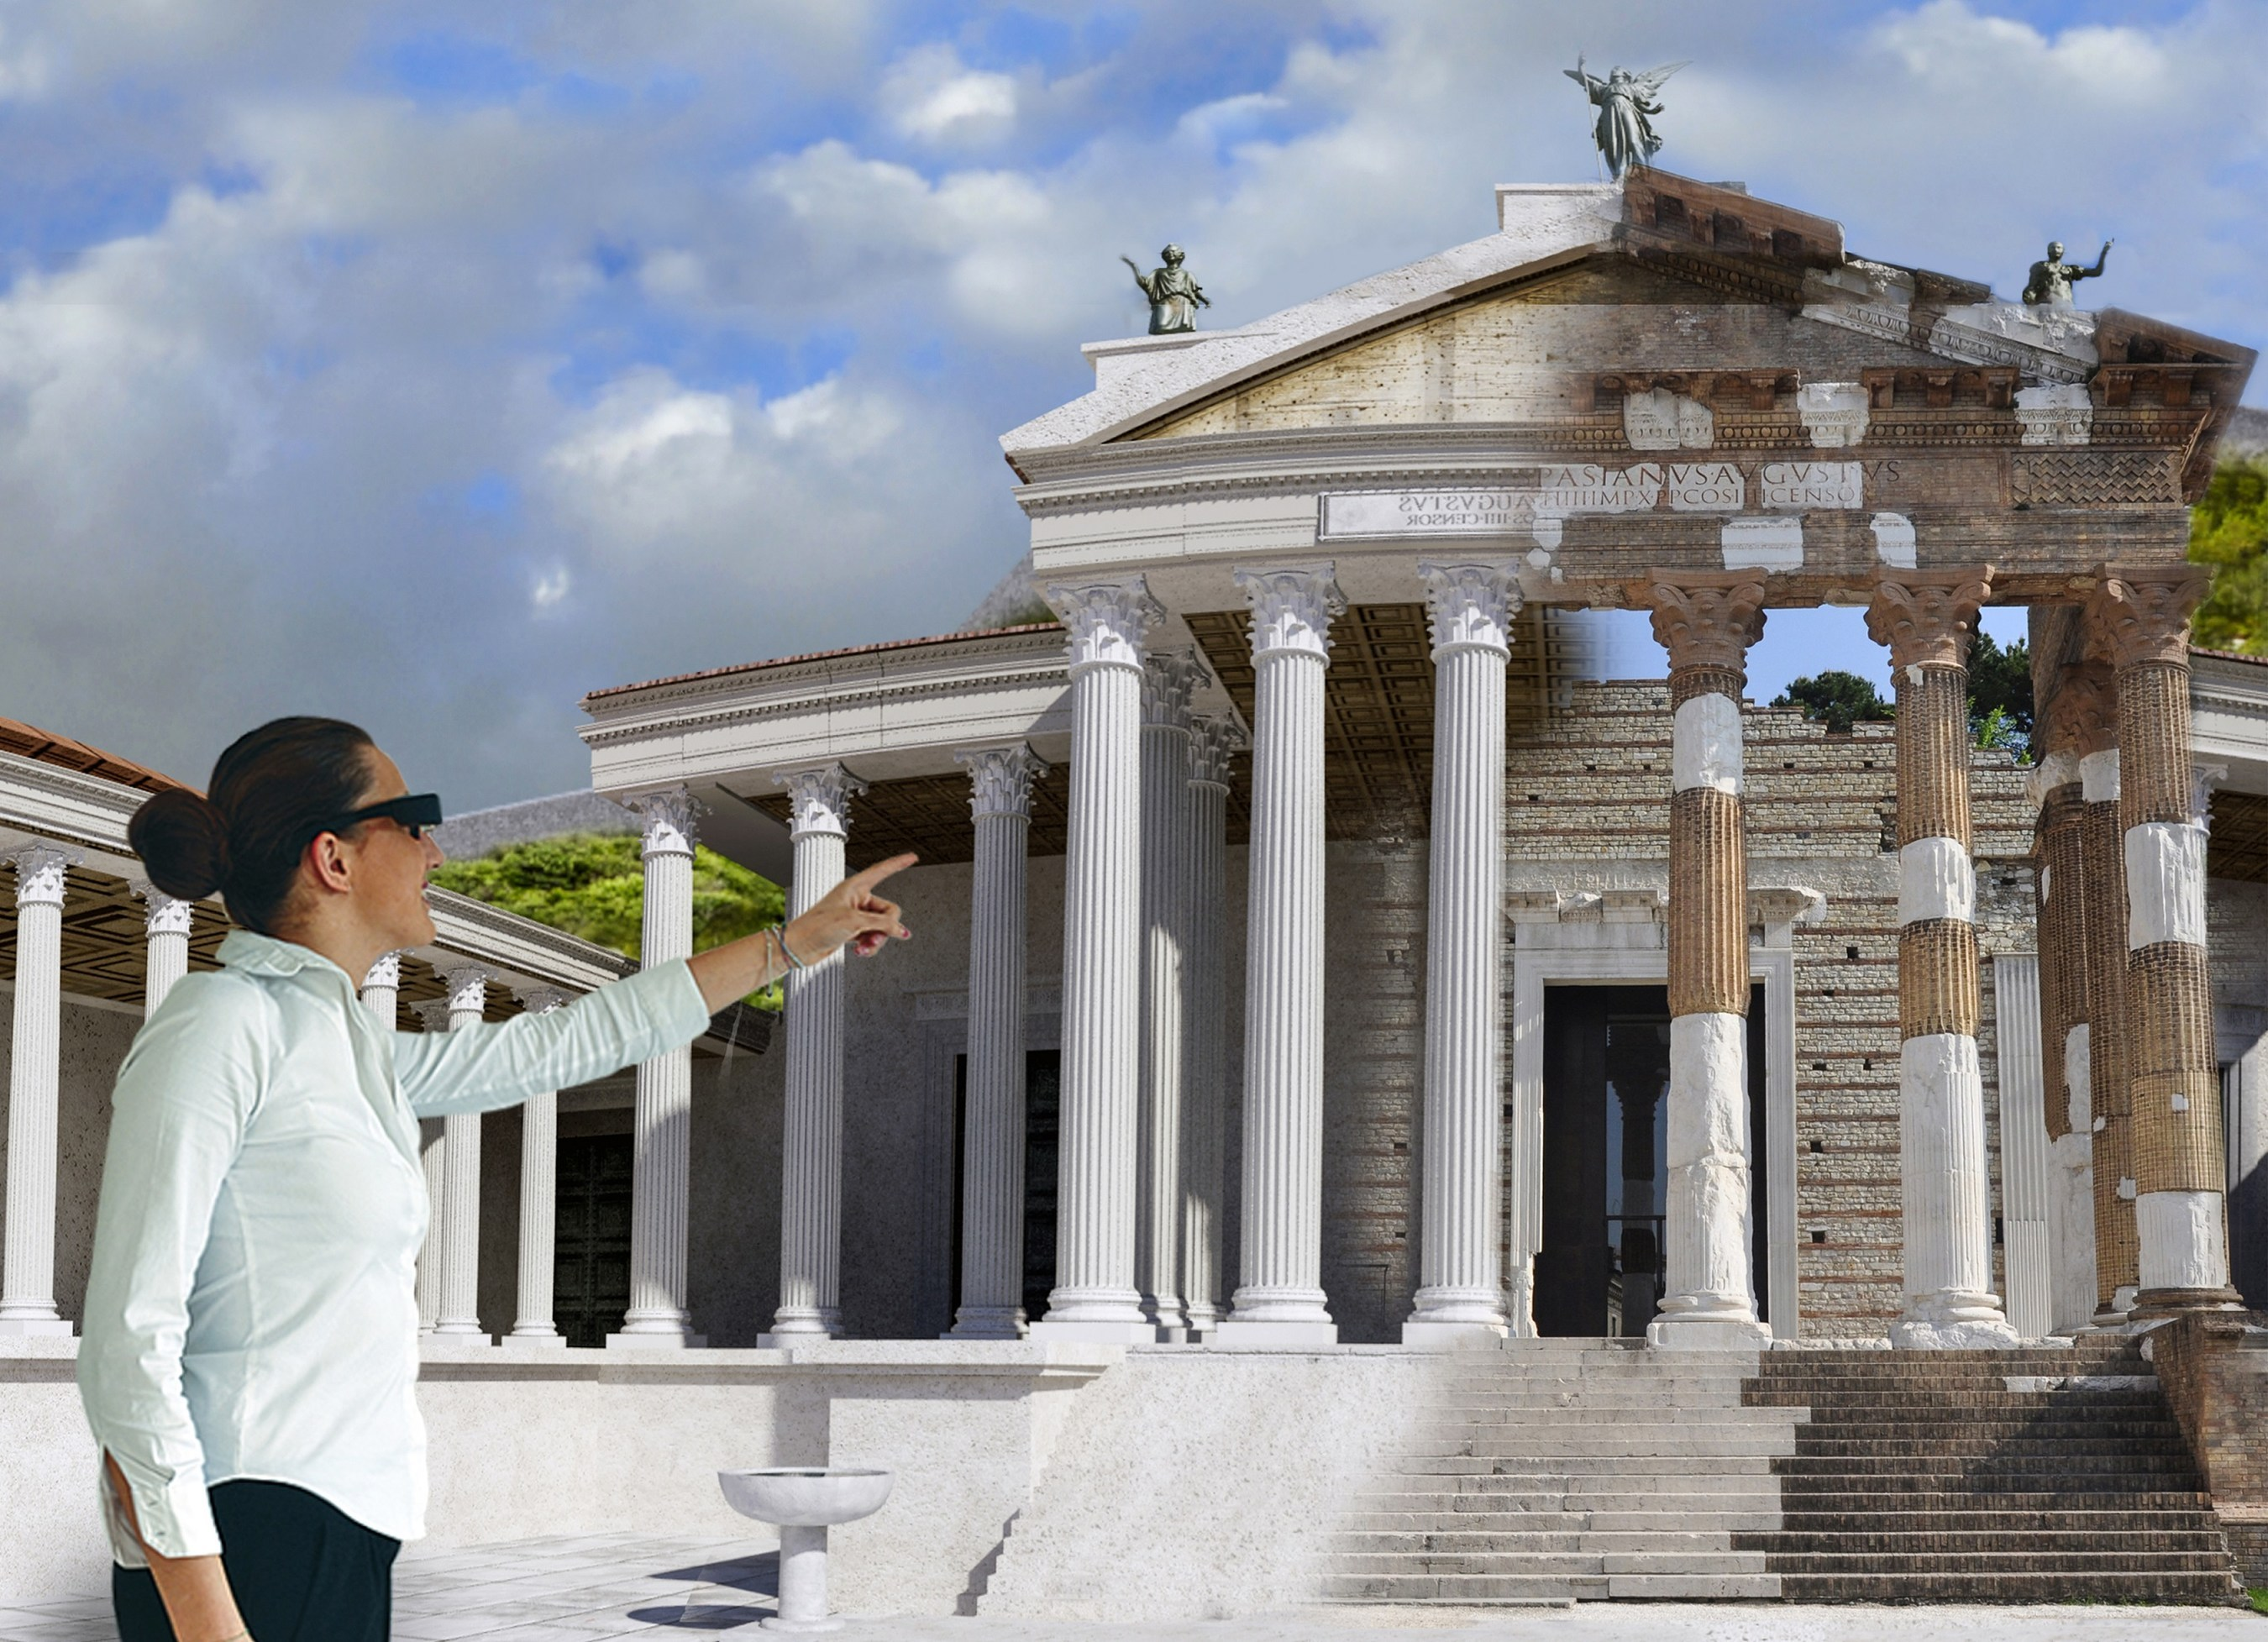 ARtGlass's augmented reality tour layers a digital reconstruction of the Capitolium at Pompeii over the visitor's real-world view of the ruin.